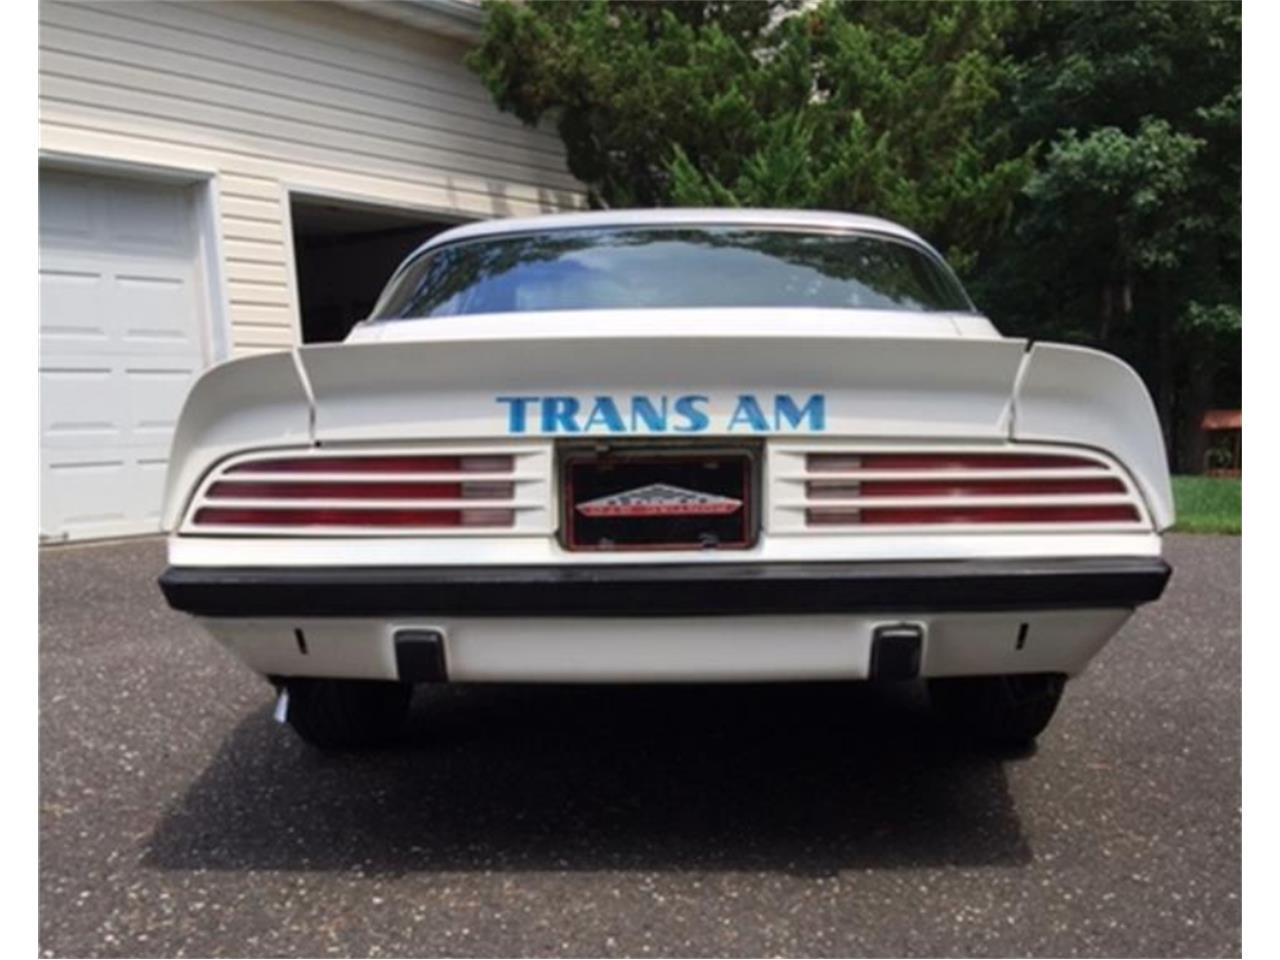 Large Picture of '75 Pontiac Firebird Trans Am located in Franklinville New Jersey Offered by a Private Seller - QKWB